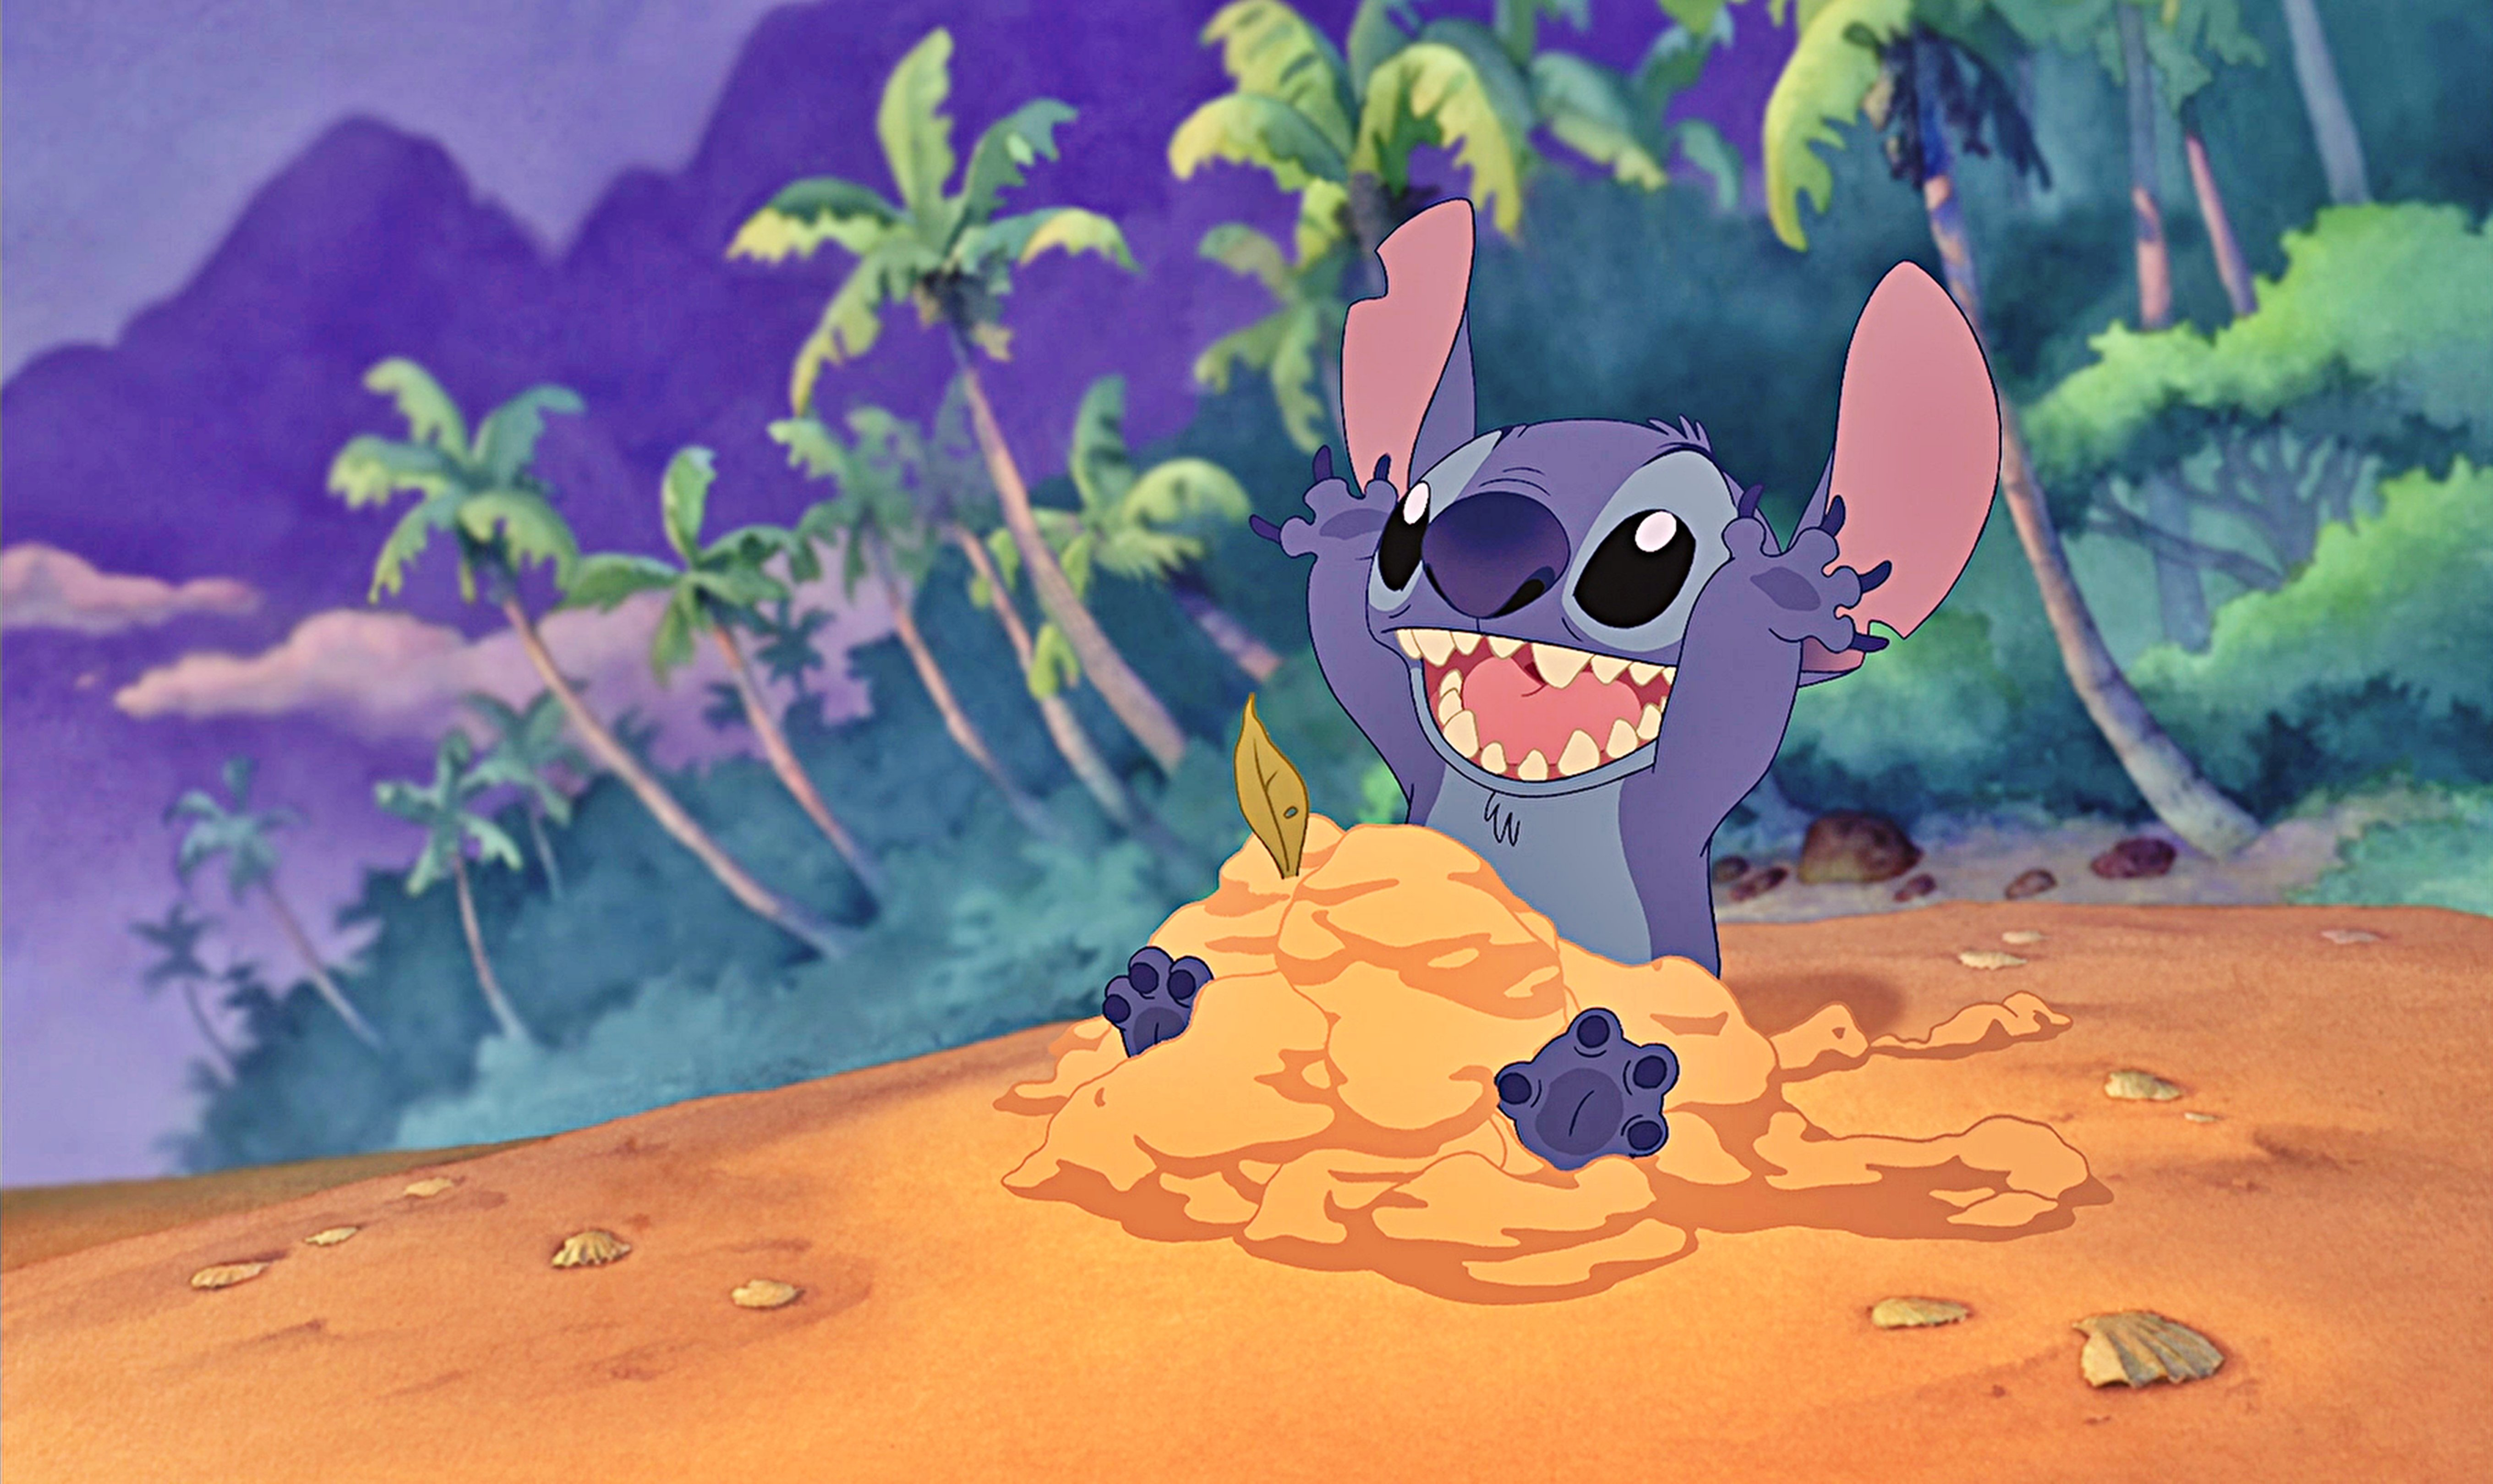 Lilo and Stitch Wallpaper HD for IPhone and Android   iPhone2Lovely 5442x3240